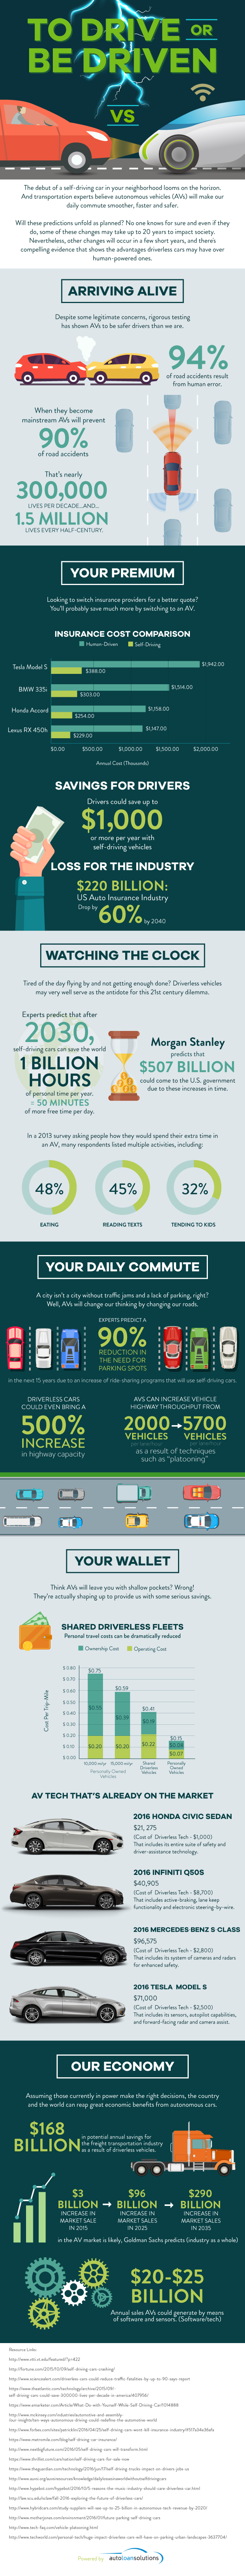 AutoLoansSolutions_ToDriveorBeDriven_Infographic